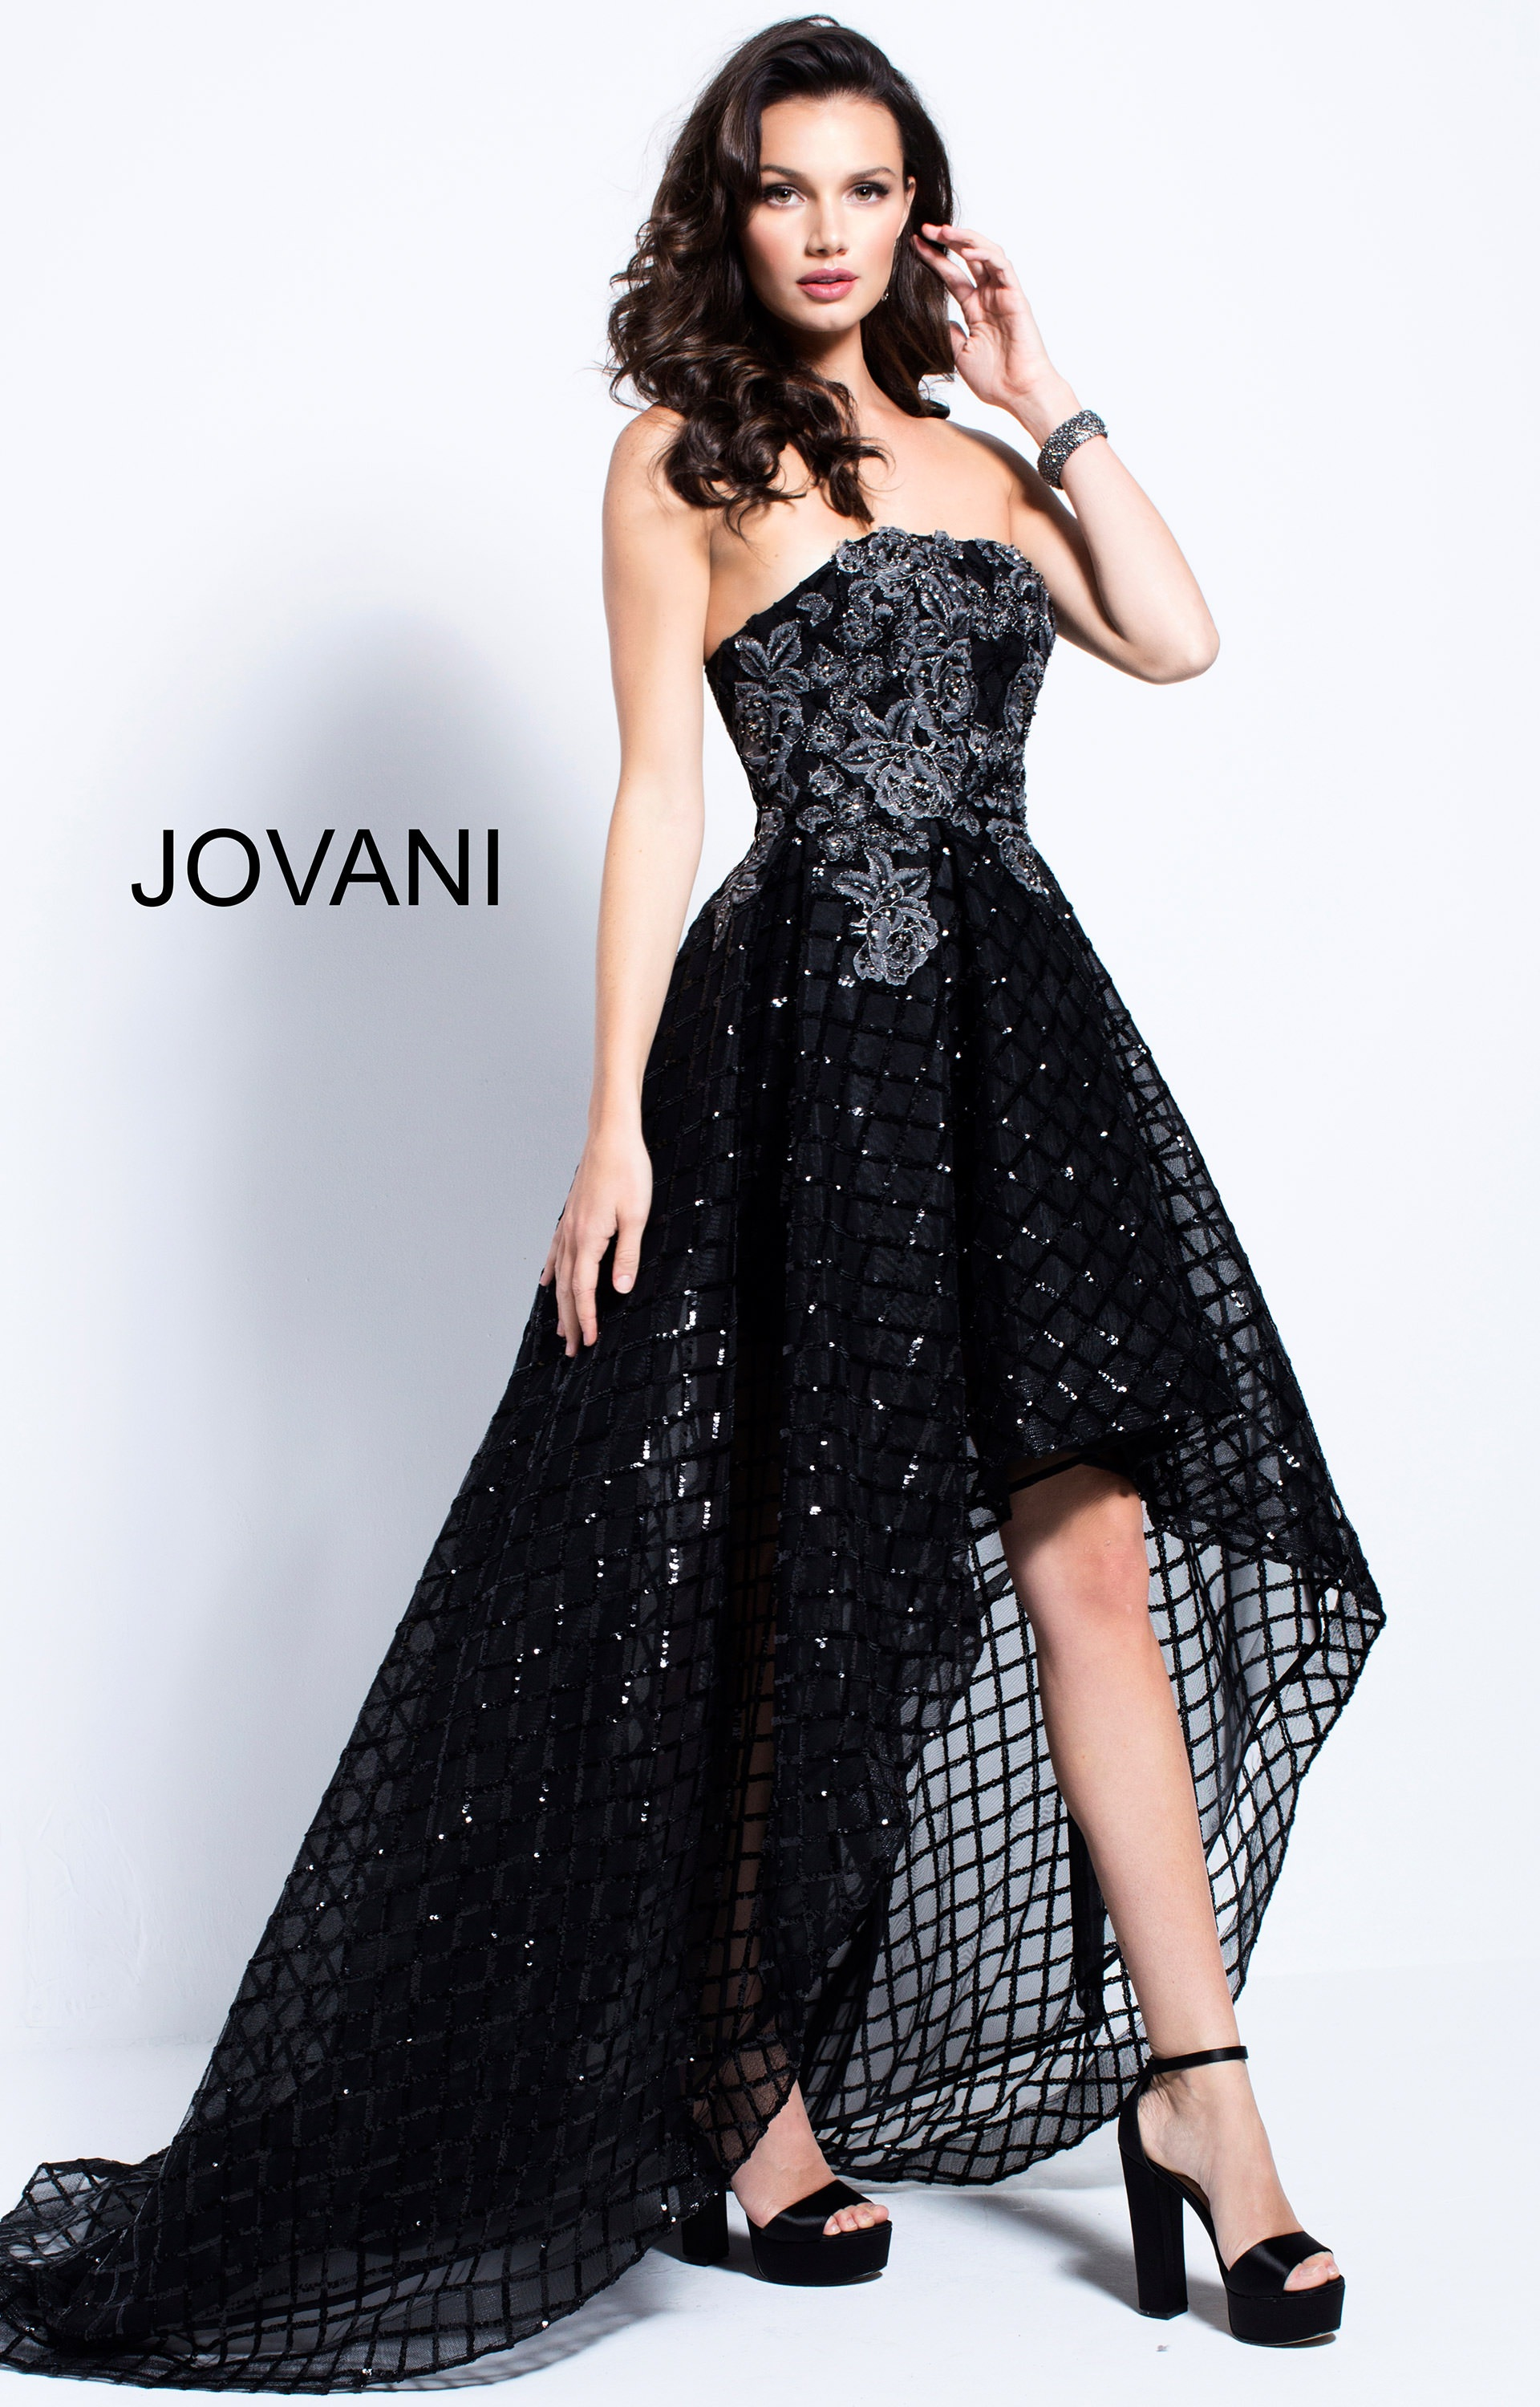 Jovani 55733 Tulle High Low Floral Sequin Prom Dress